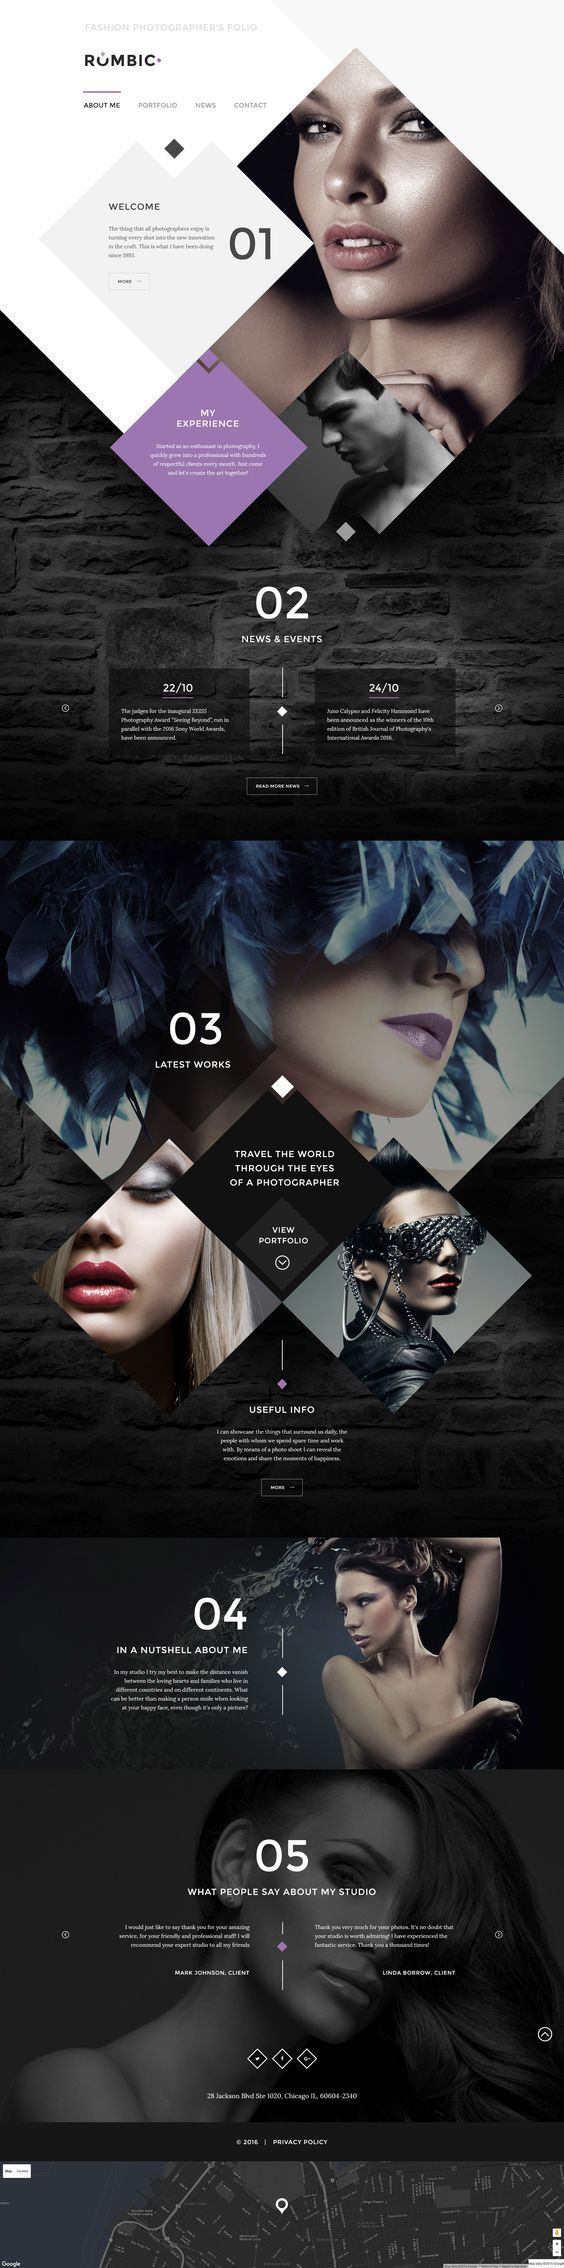 Creative Web Designs for Inspiration #WEB #webdesign #website #websites #webdesigner #websiteinspiration #design